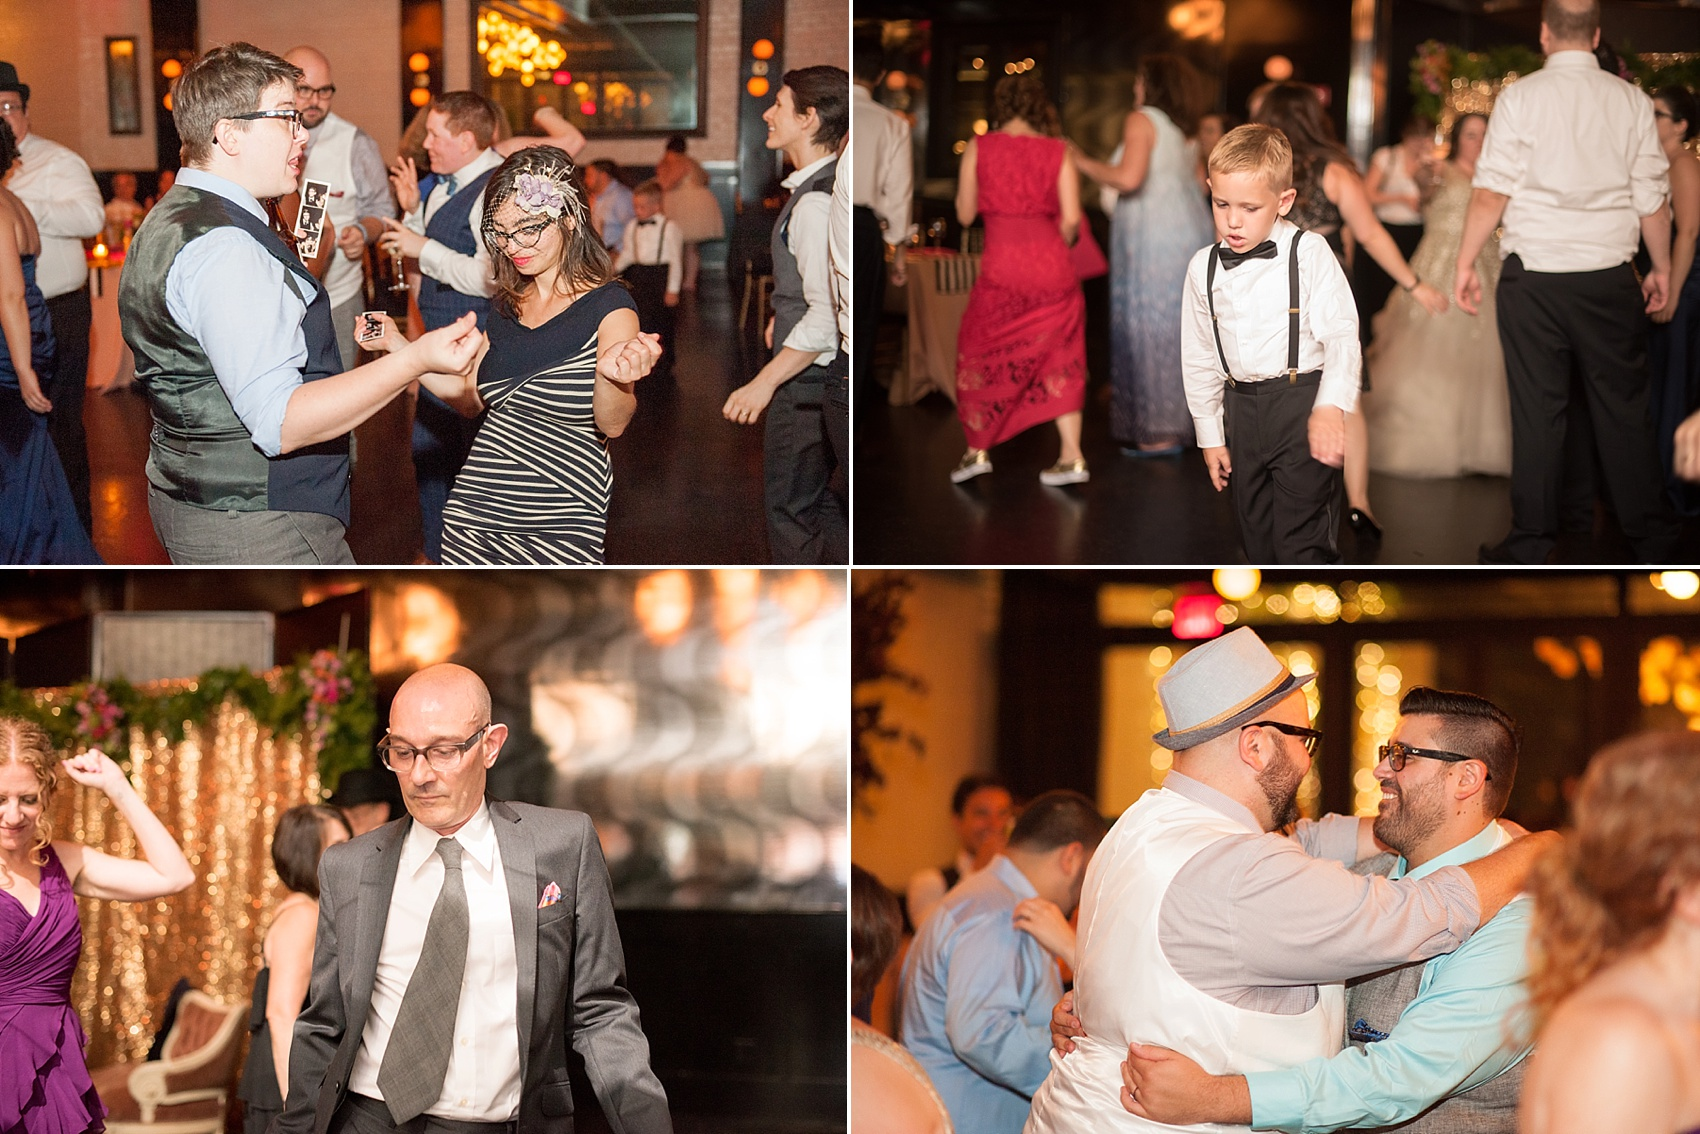 501 Union lesbian wedding in Brooklyn, NY. Photos by Mikkel Paige Photography, planning by Ashley M Chamblin.